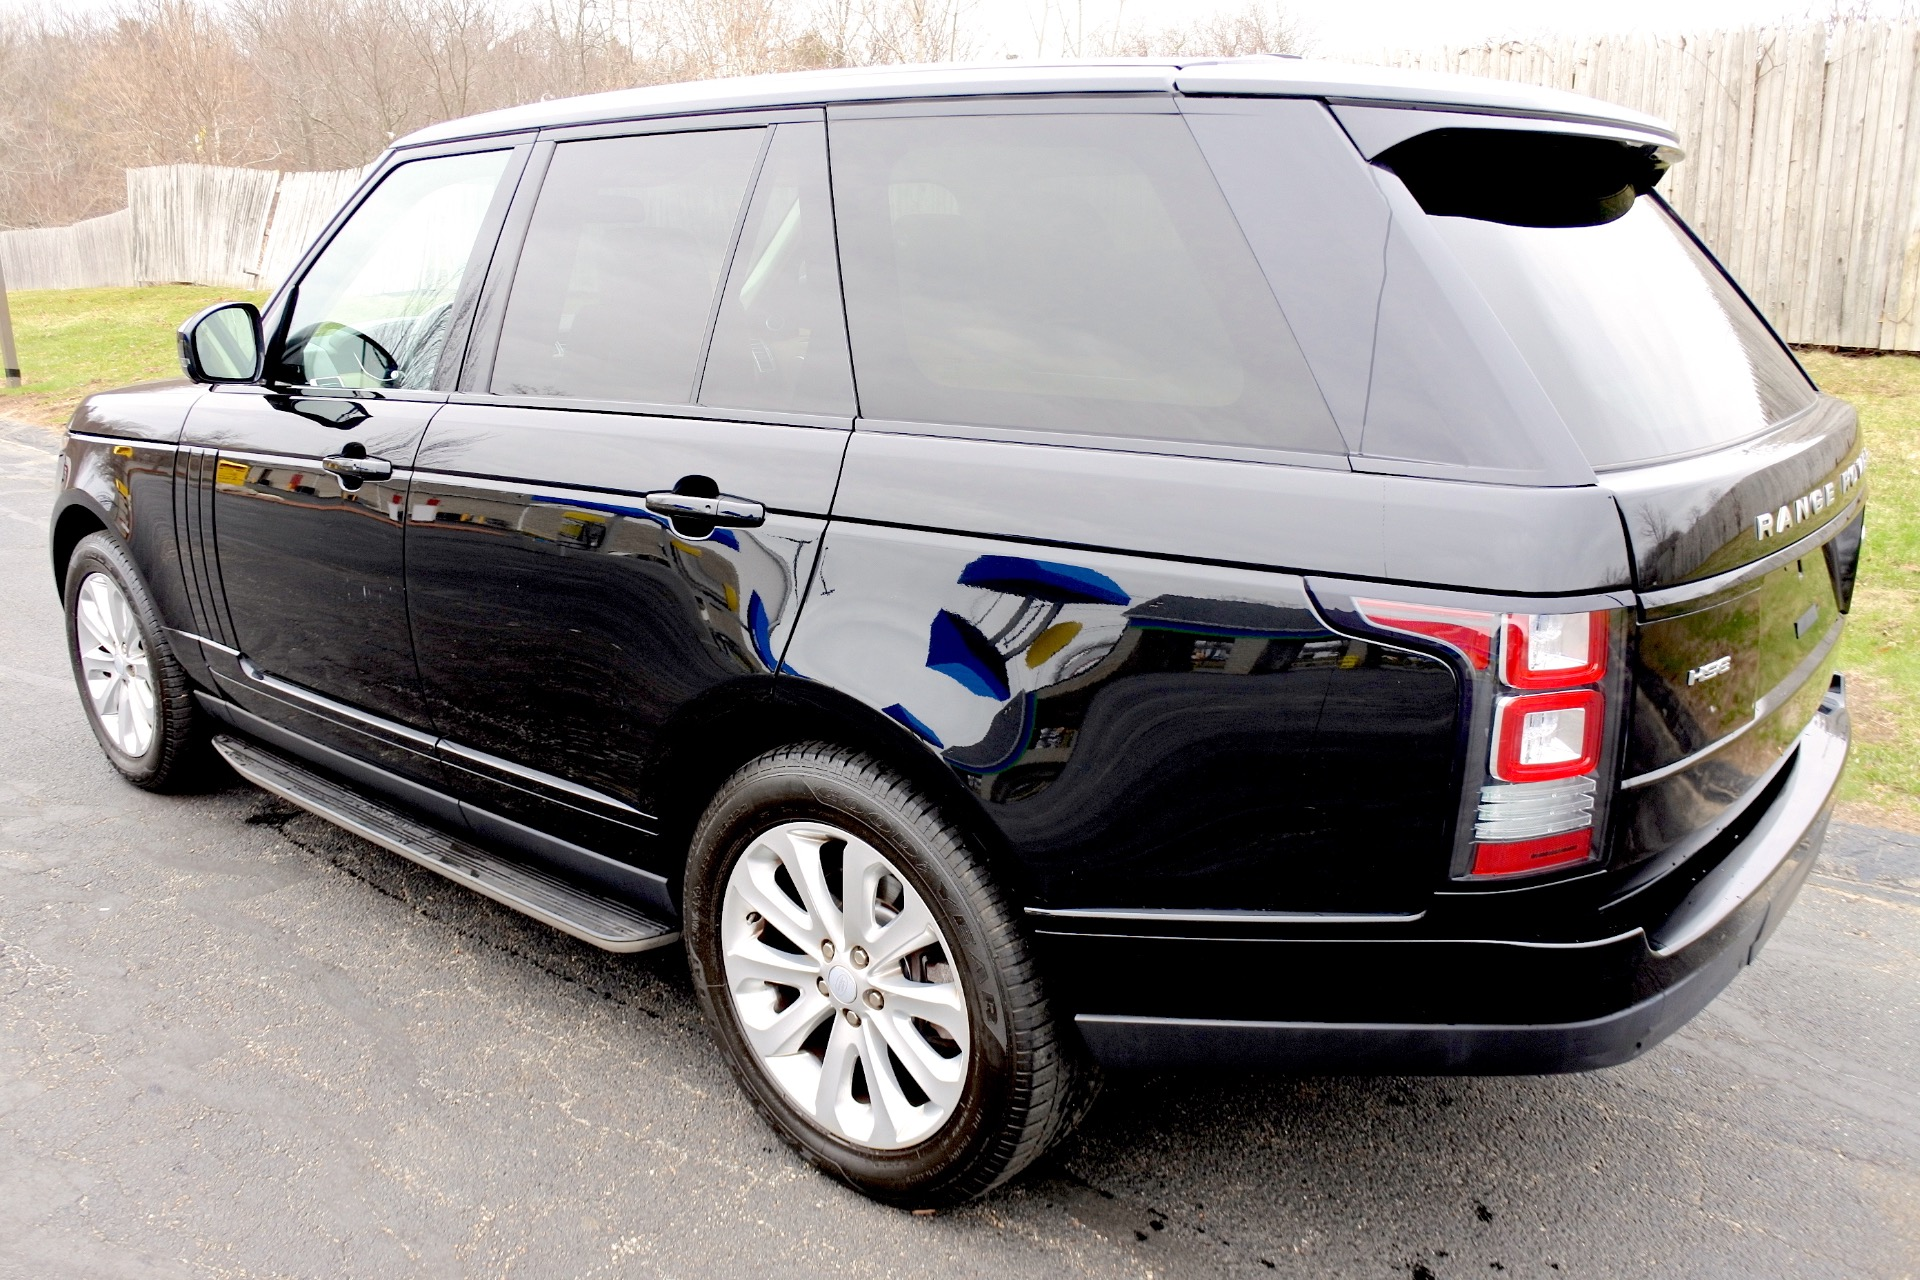 Used 2015 Land Rover Range Rover HSE Used 2015 Land Rover Range Rover HSE for sale  at Metro West Motorcars LLC in Shrewsbury MA 3